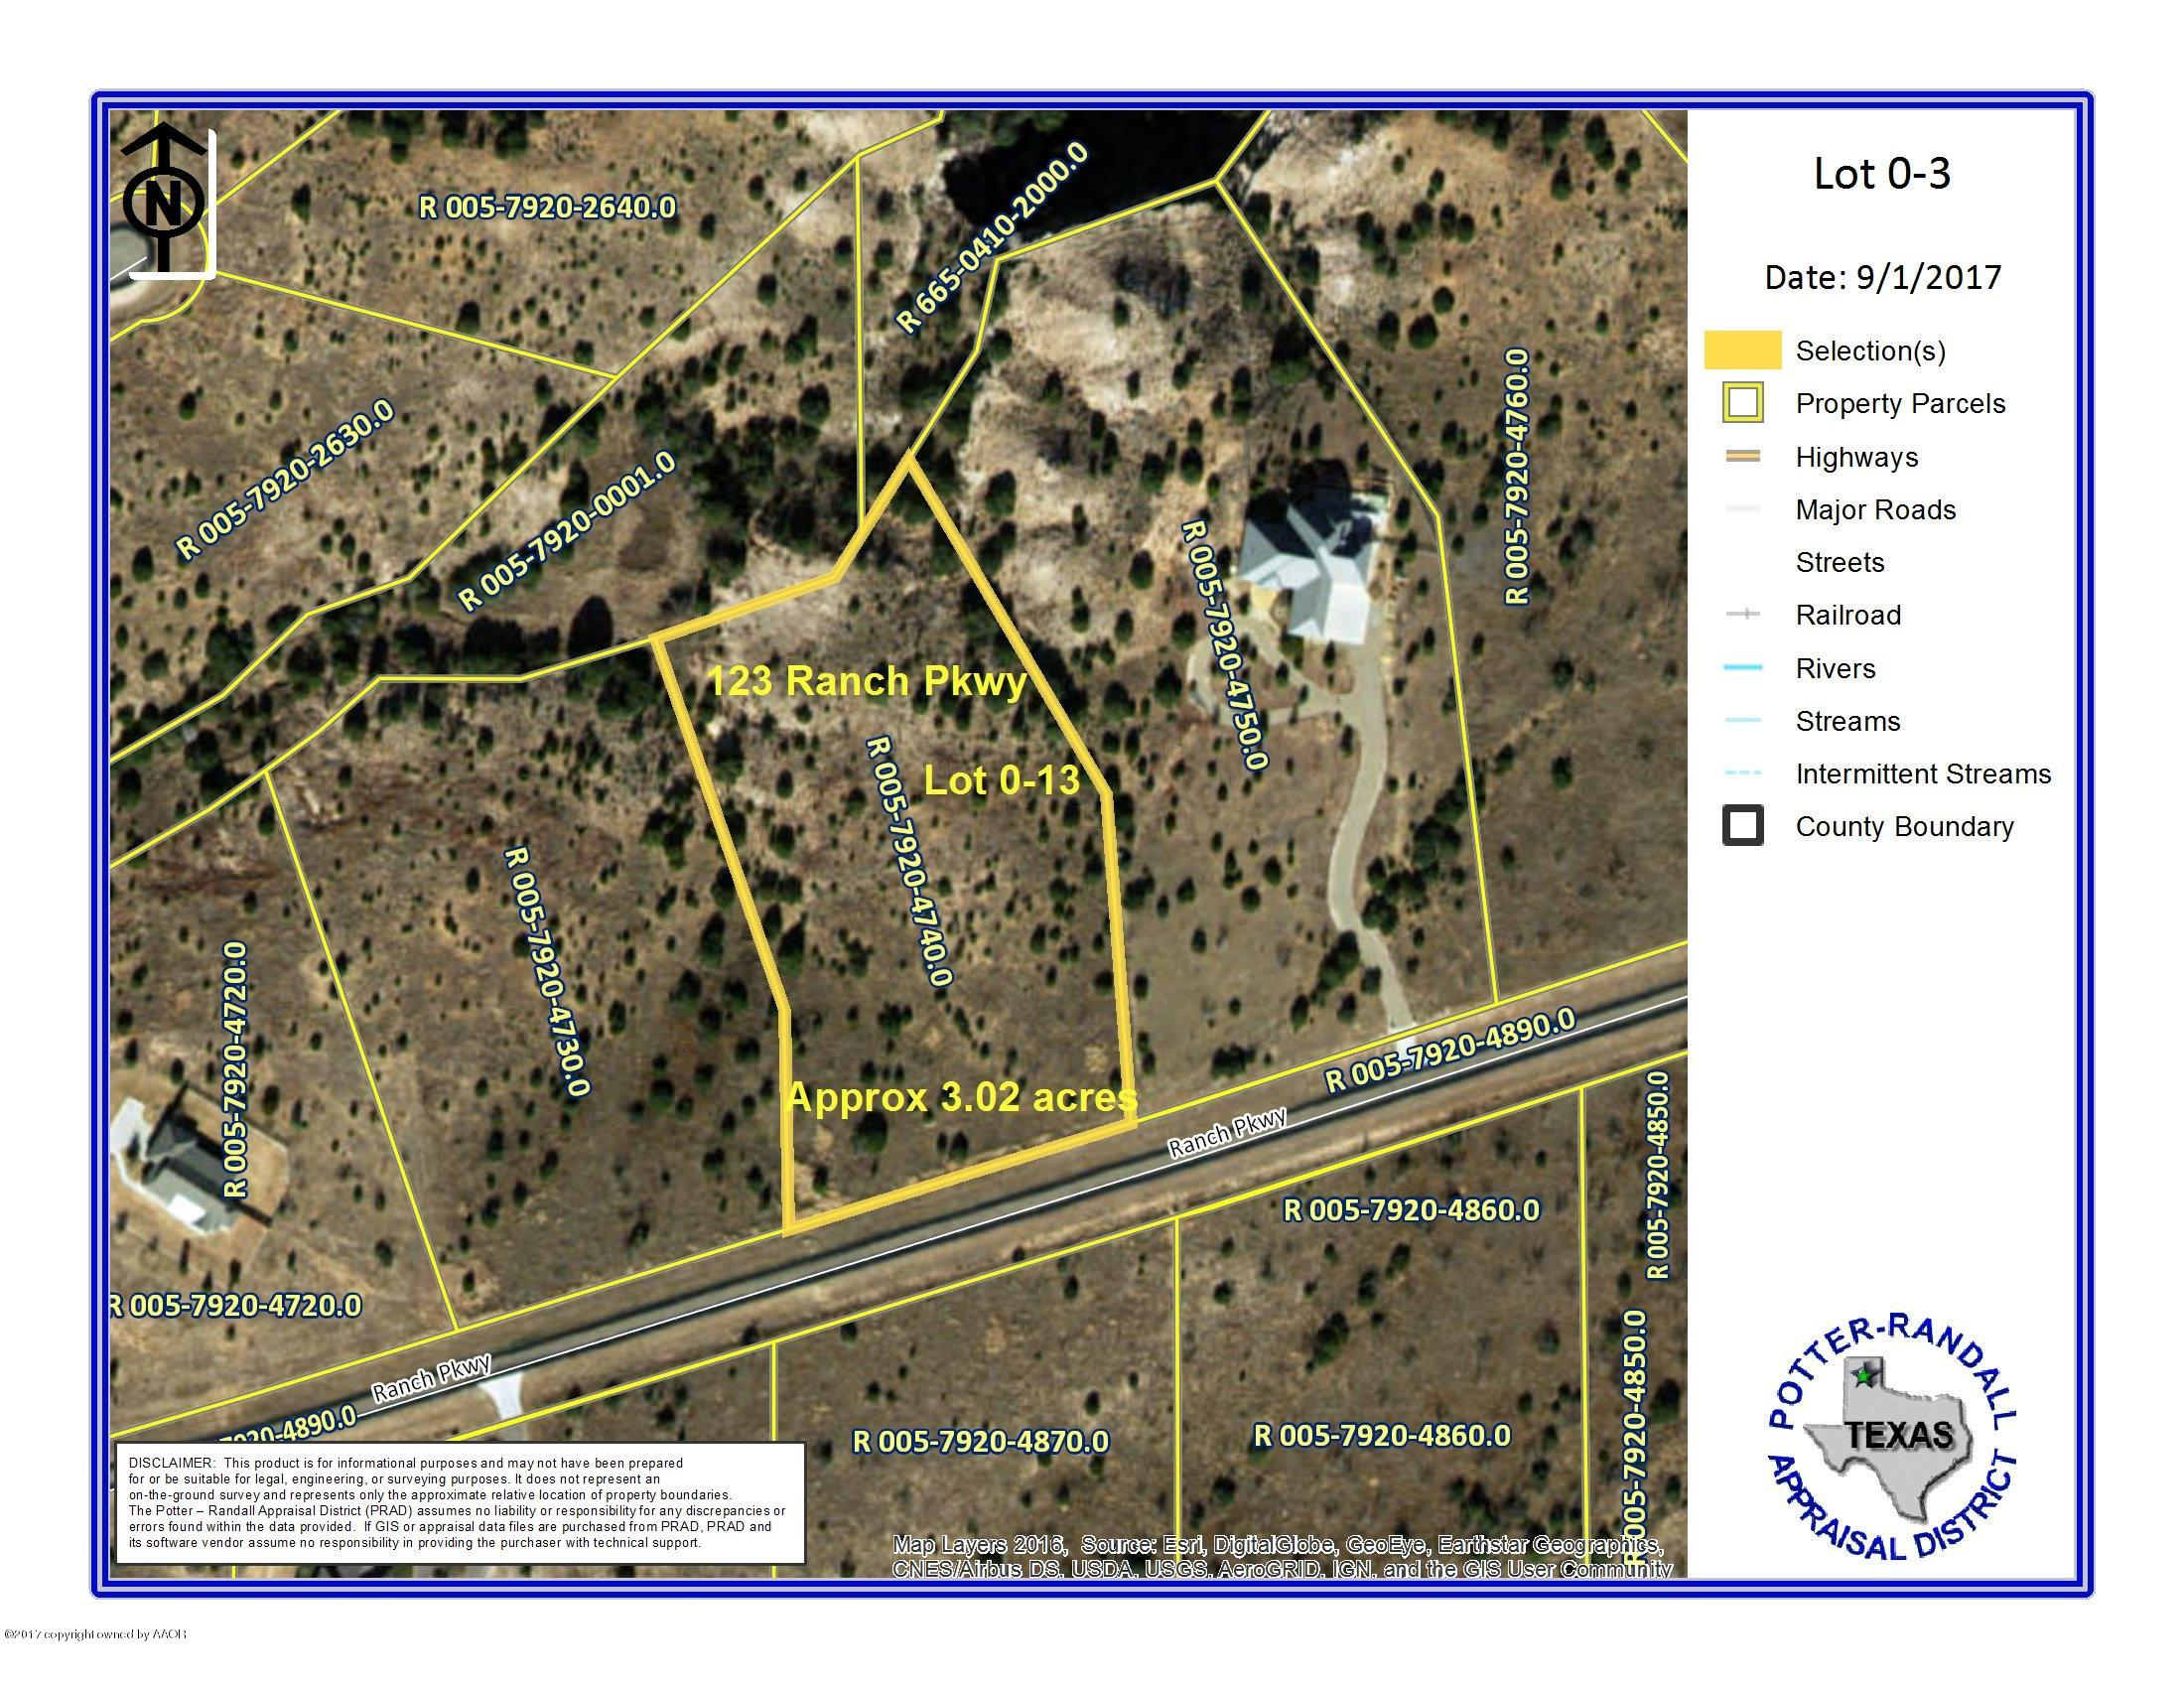 123 RANCH PKWY, Canyon, Texas 79015, ,Lots And Land,For Sale,123 RANCH PKWY,20-5903